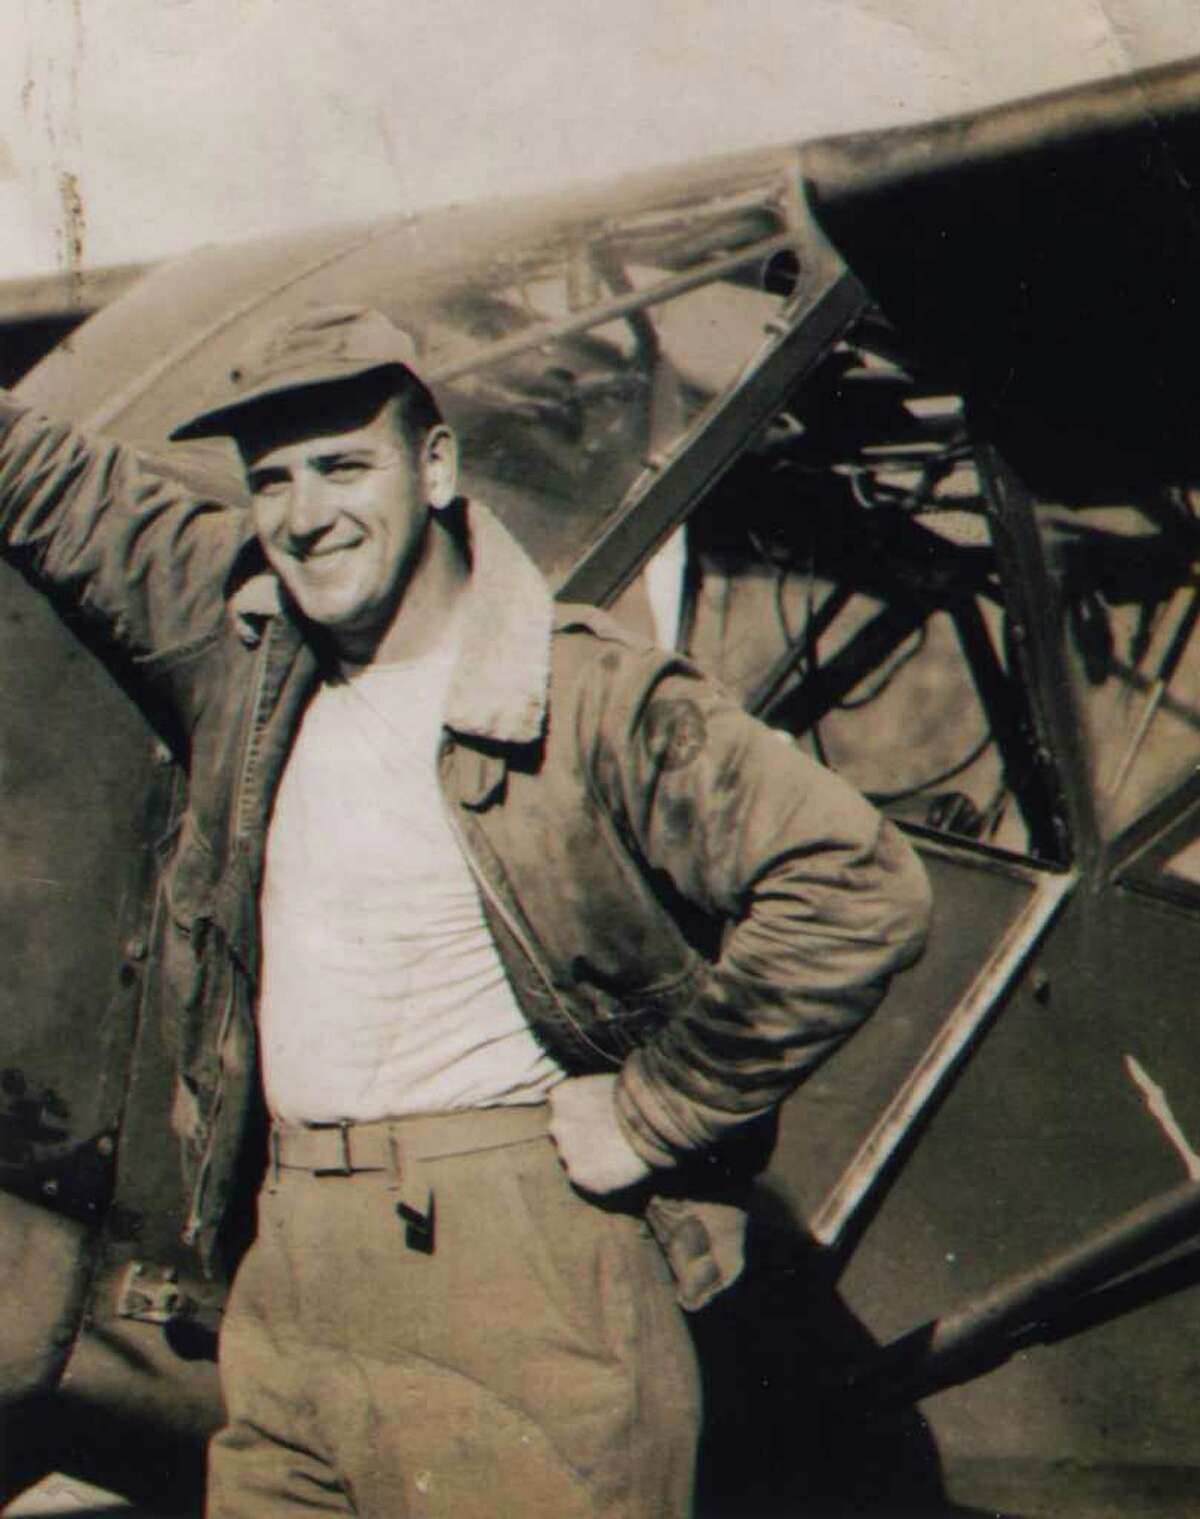 Ed With posses by his aircraft after returning from a mission in Burma, circa 1944. (Courtesy Ed With)